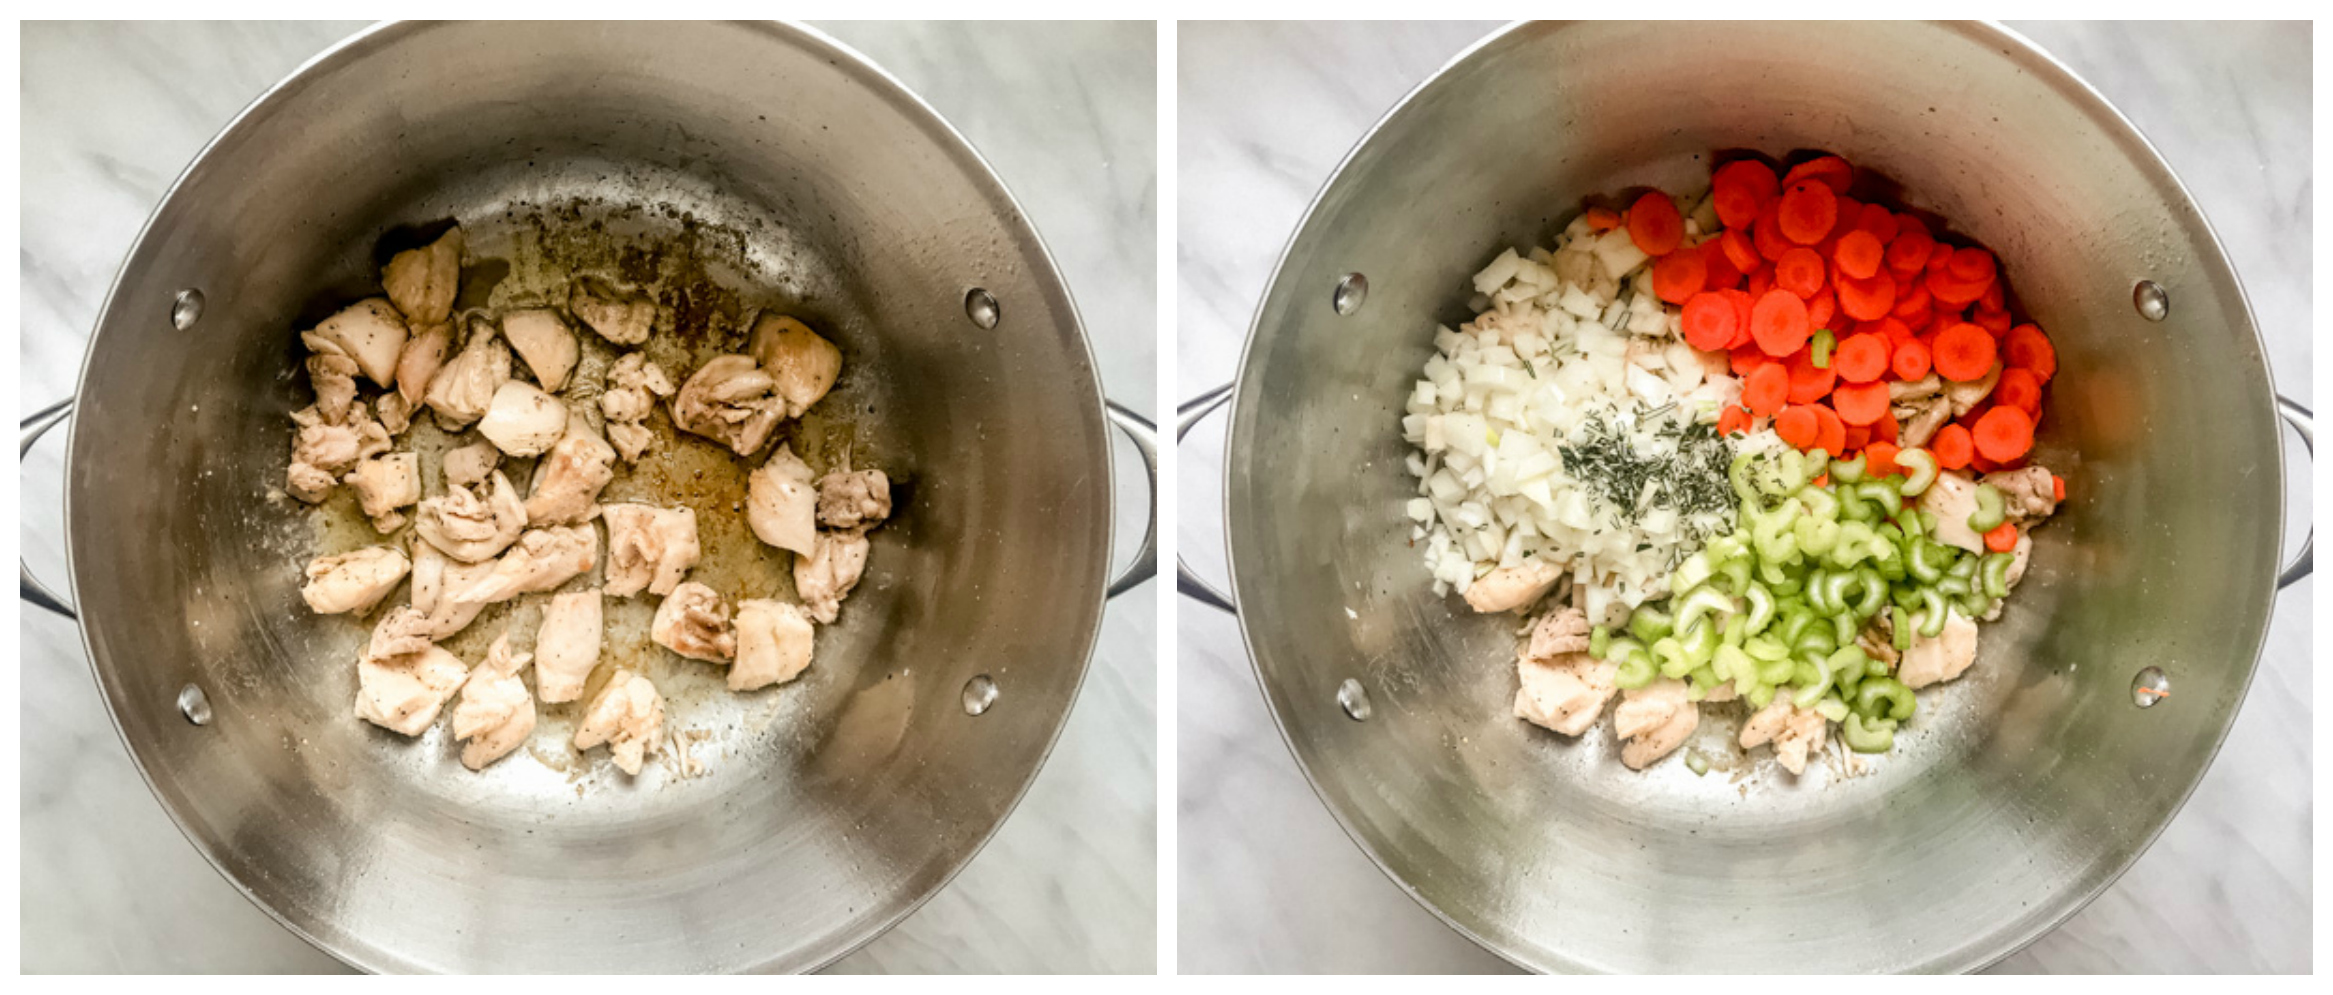 cooked chicken and veggies in soup pot